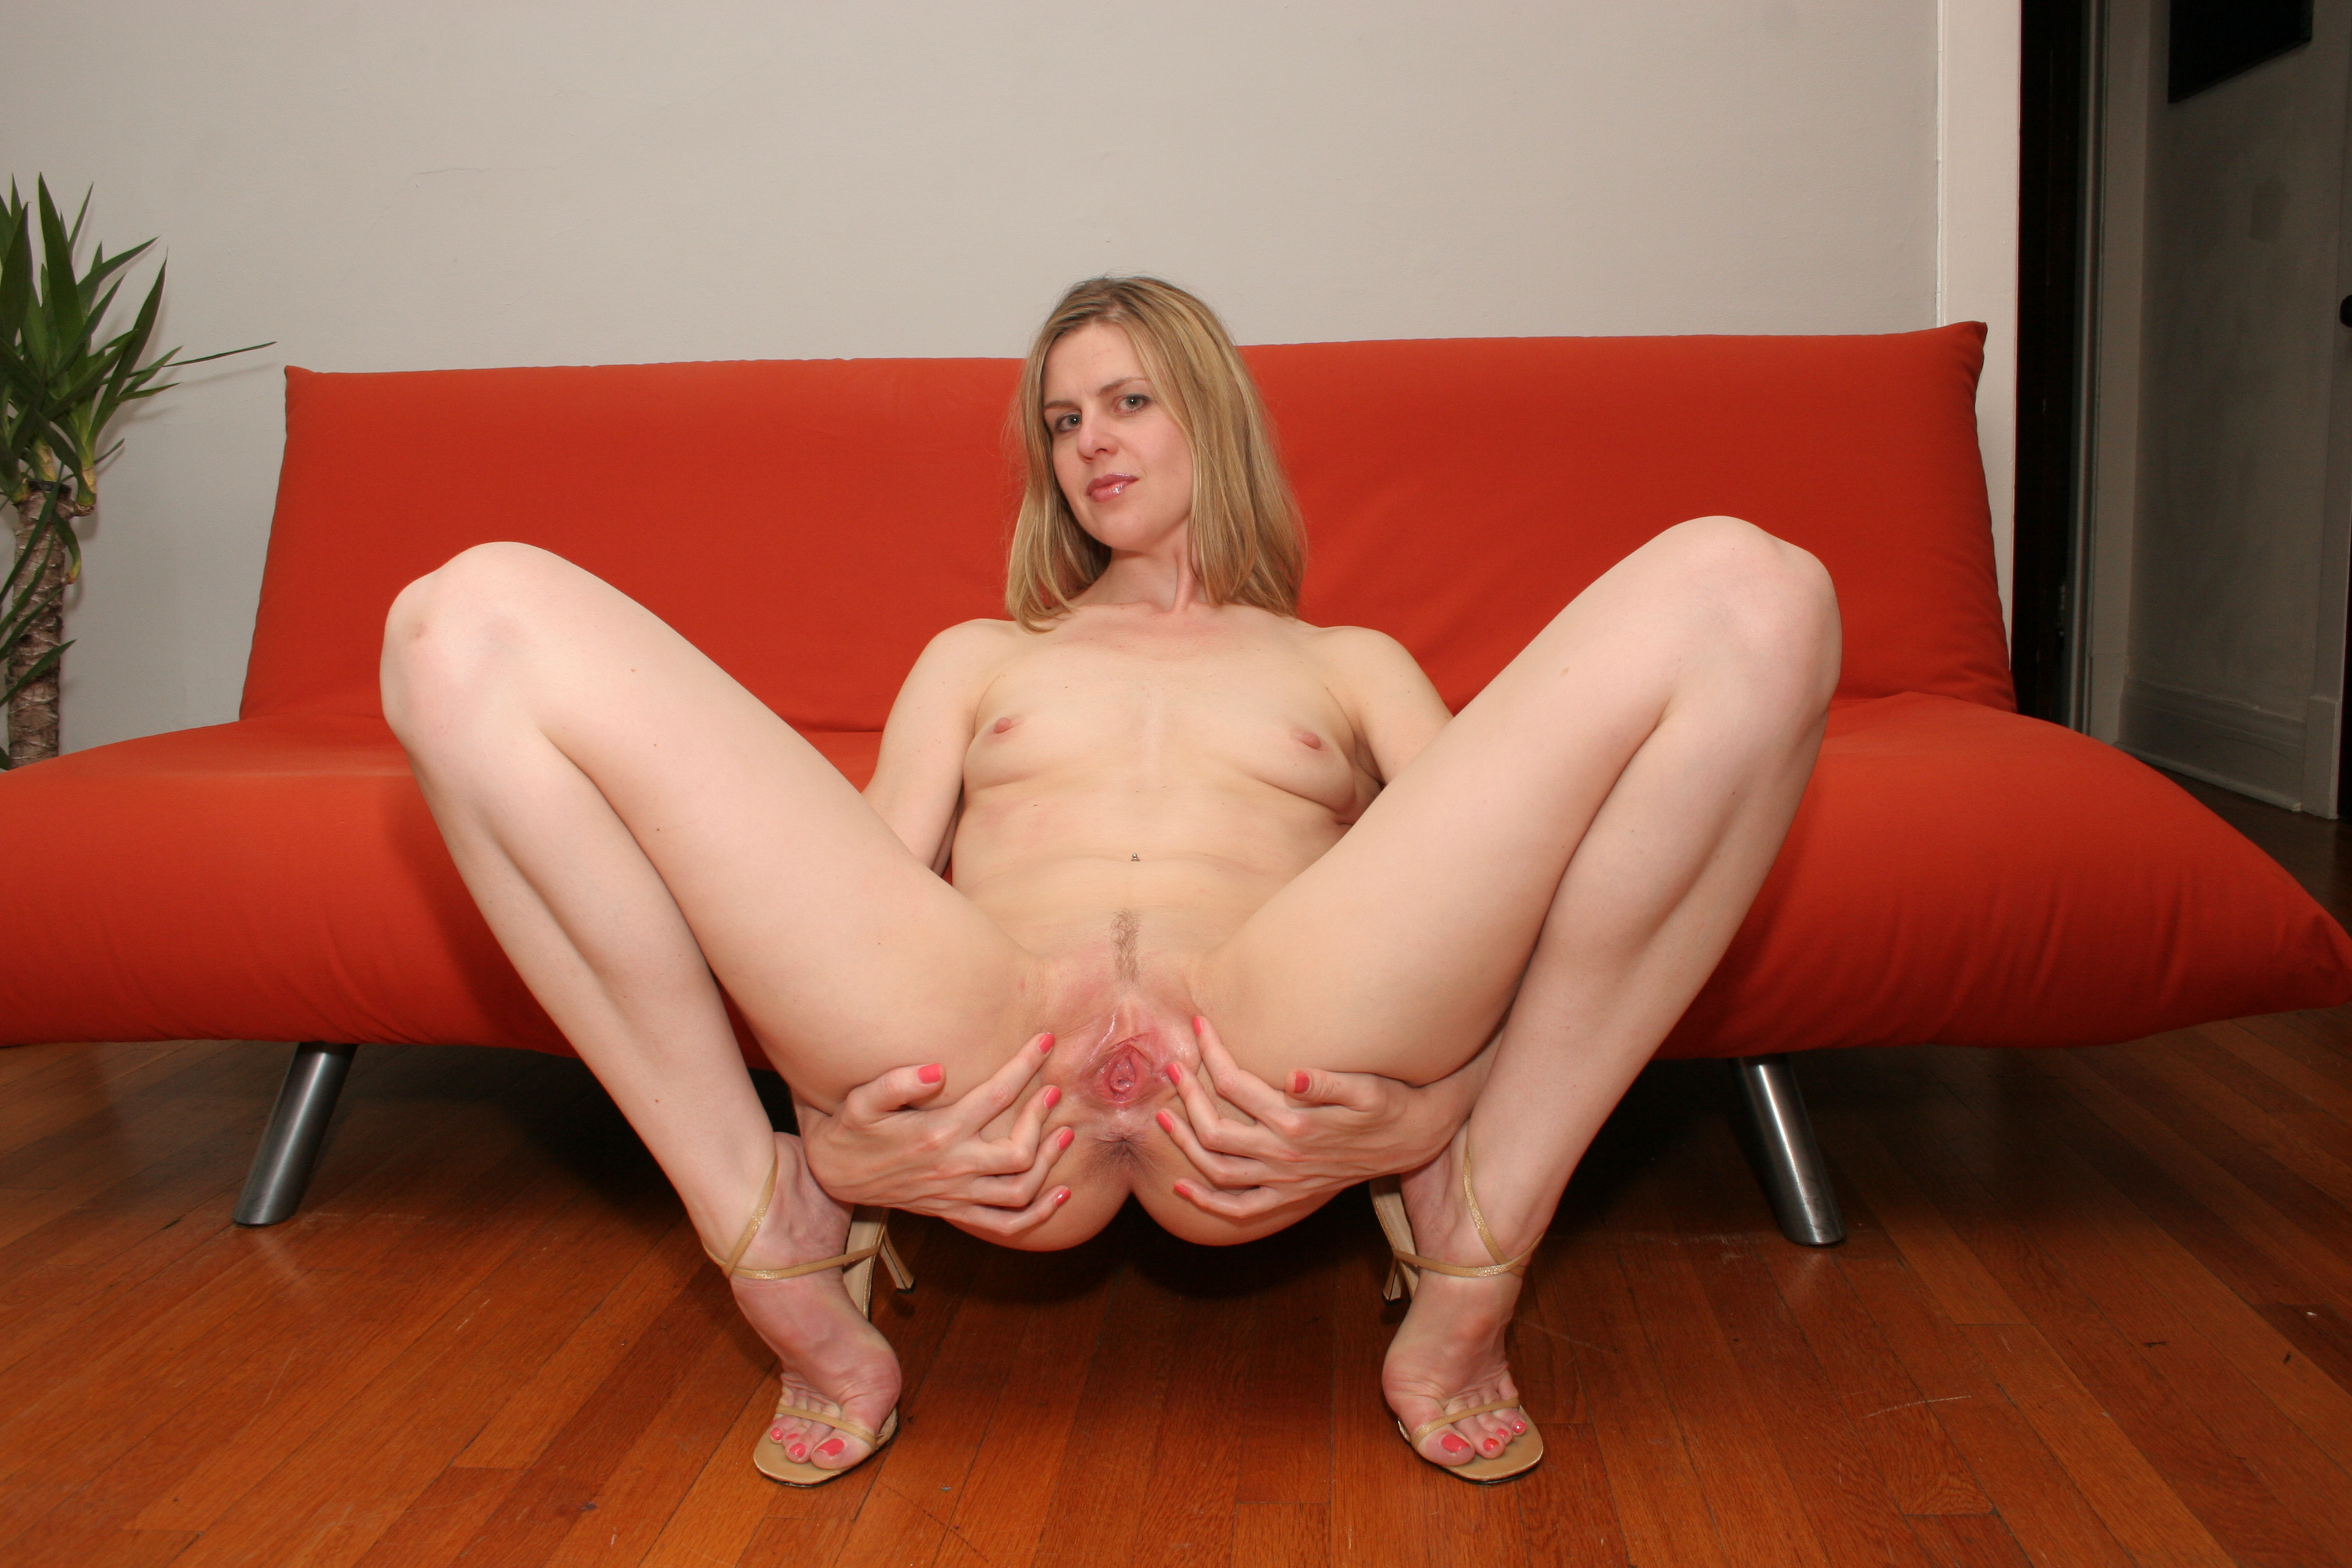 Baked mpg chastity lynn spreads her legs wide open amateur